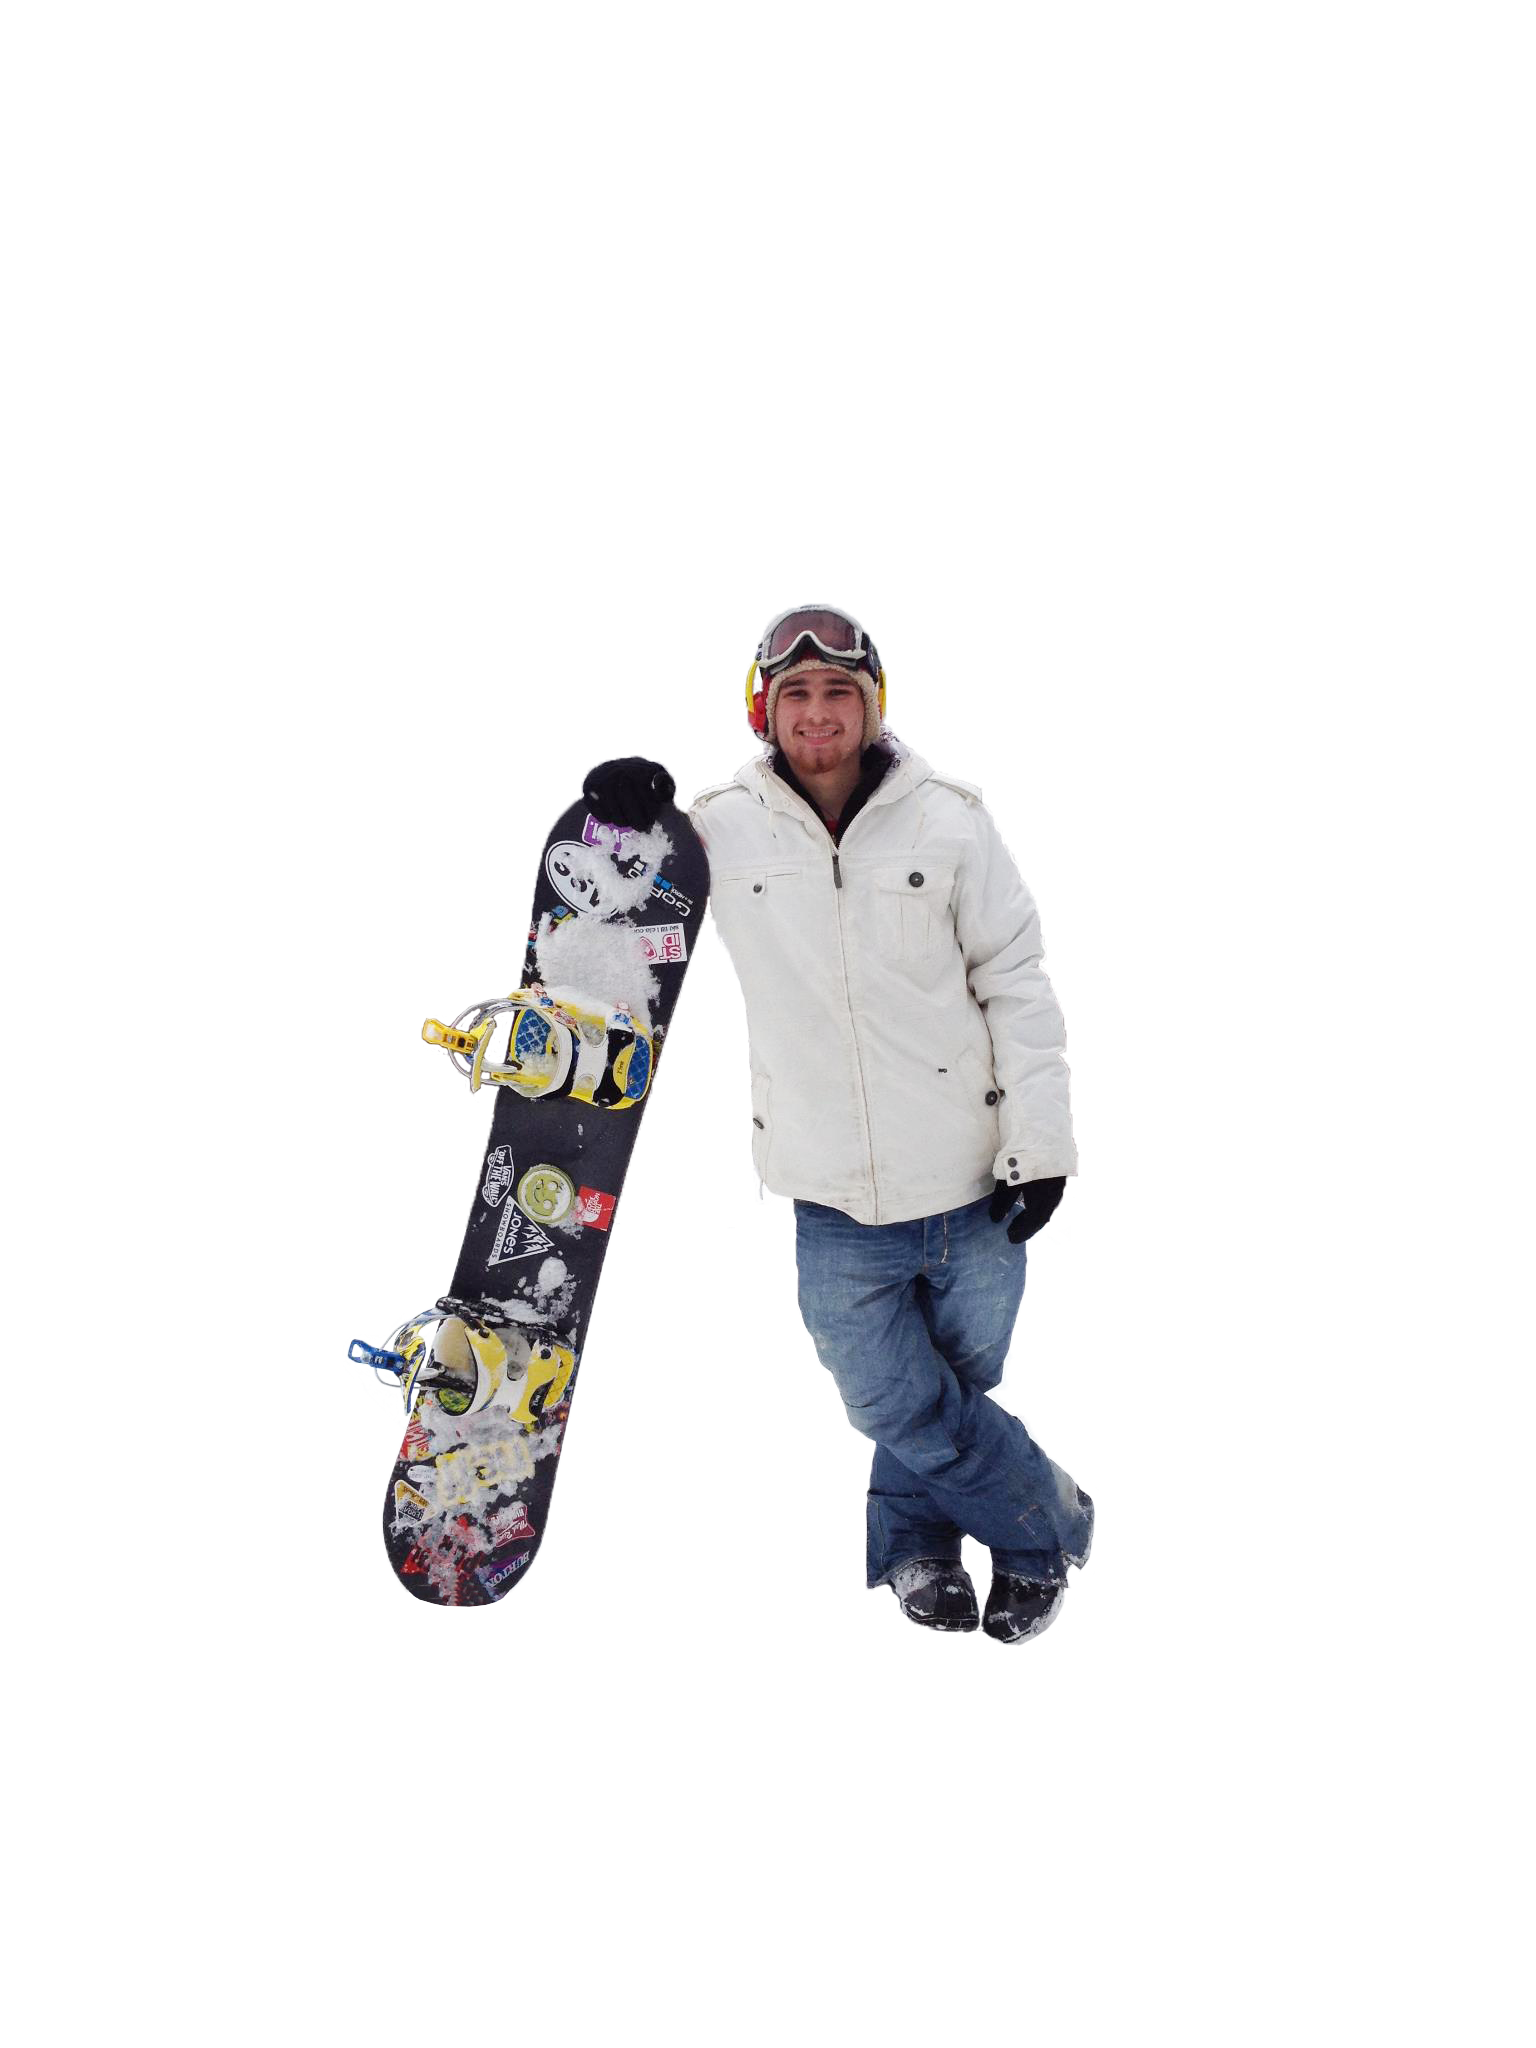 Alek Darr with snowboard at Holiday Valley Resort